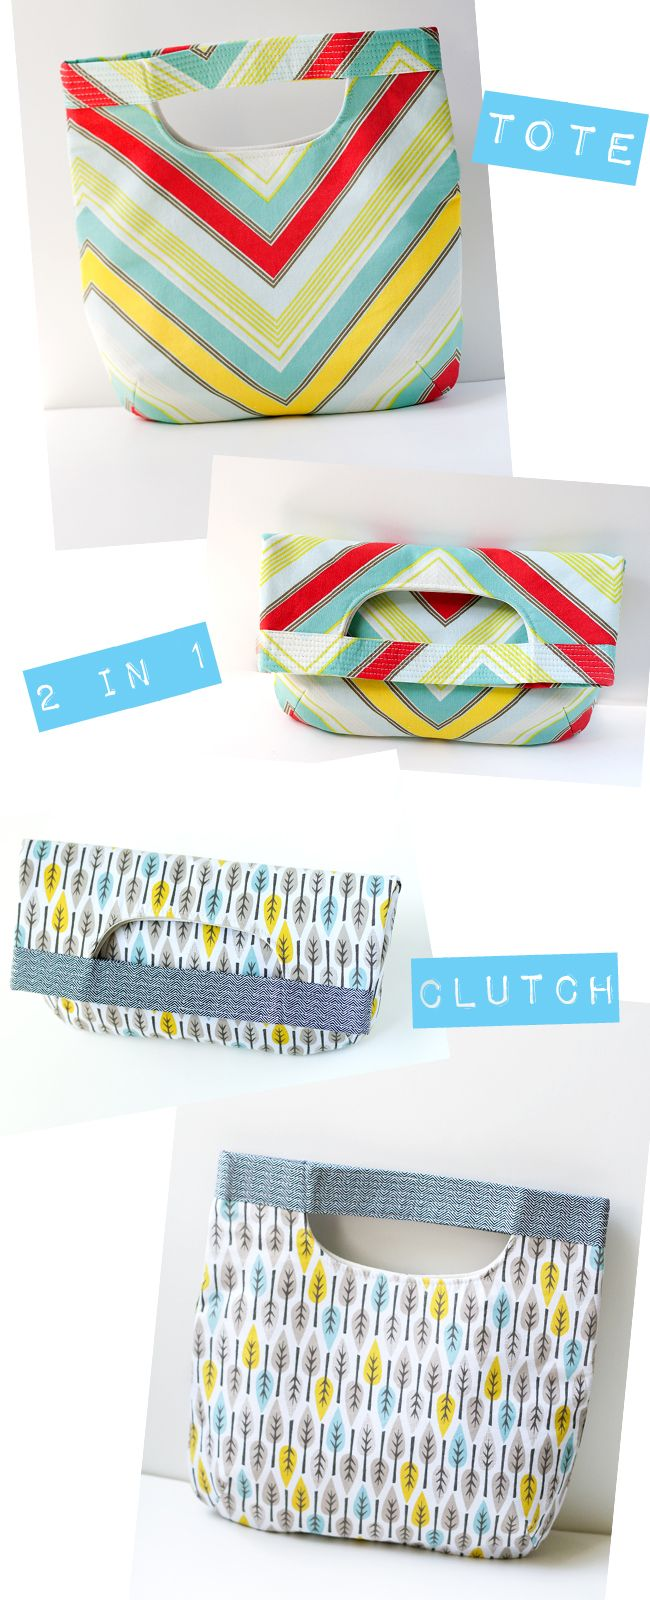 clutch? or Tote? or Clutch?